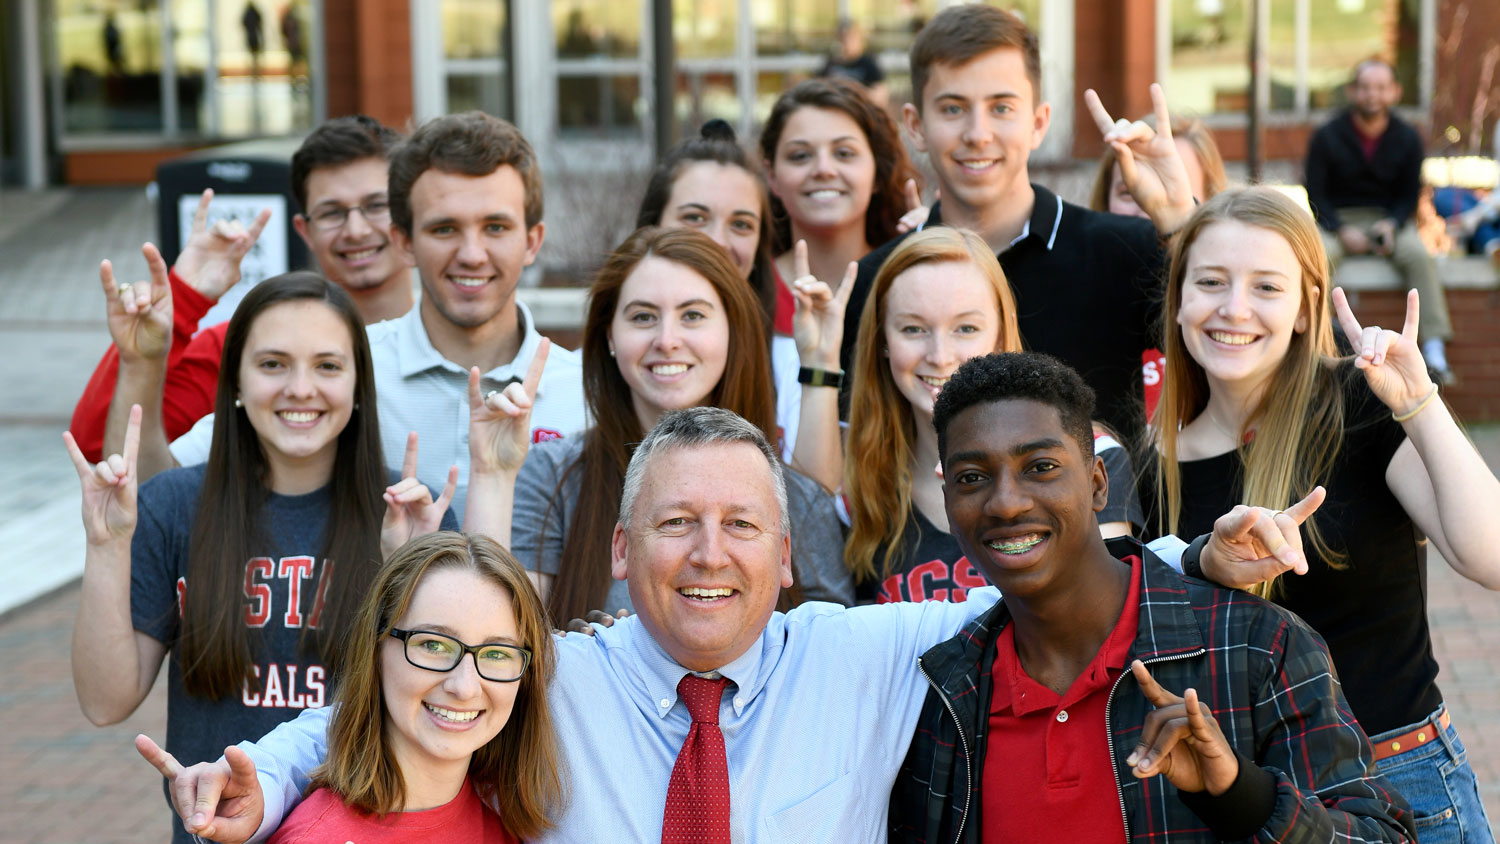 NC State CALS Dean Richard Linton with a group of students.